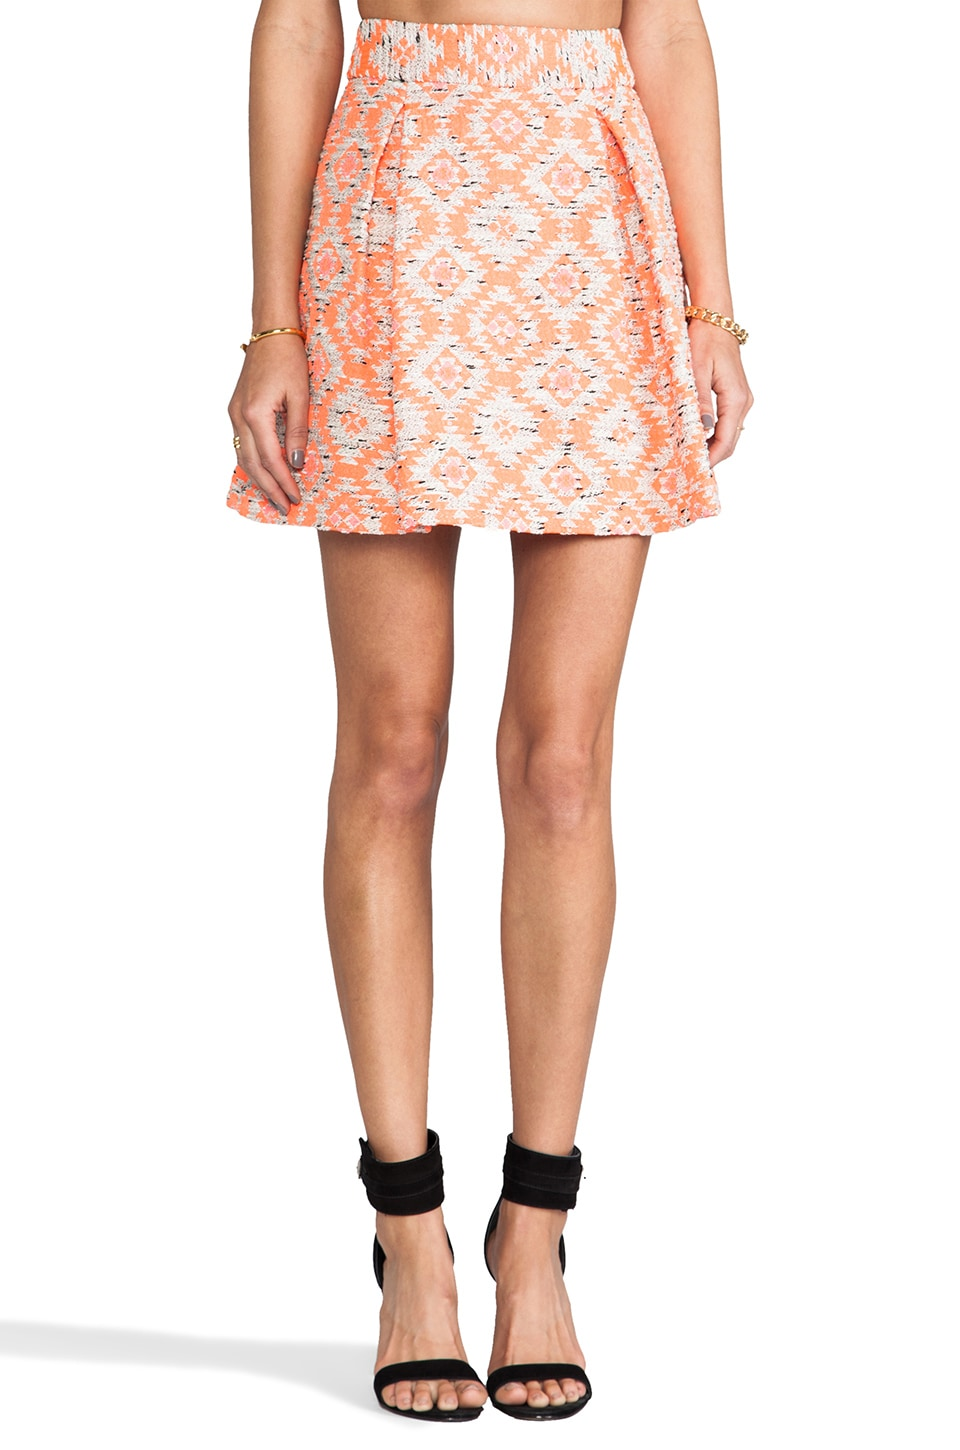 Nanette Lepore Wildcat Skirt in Coral